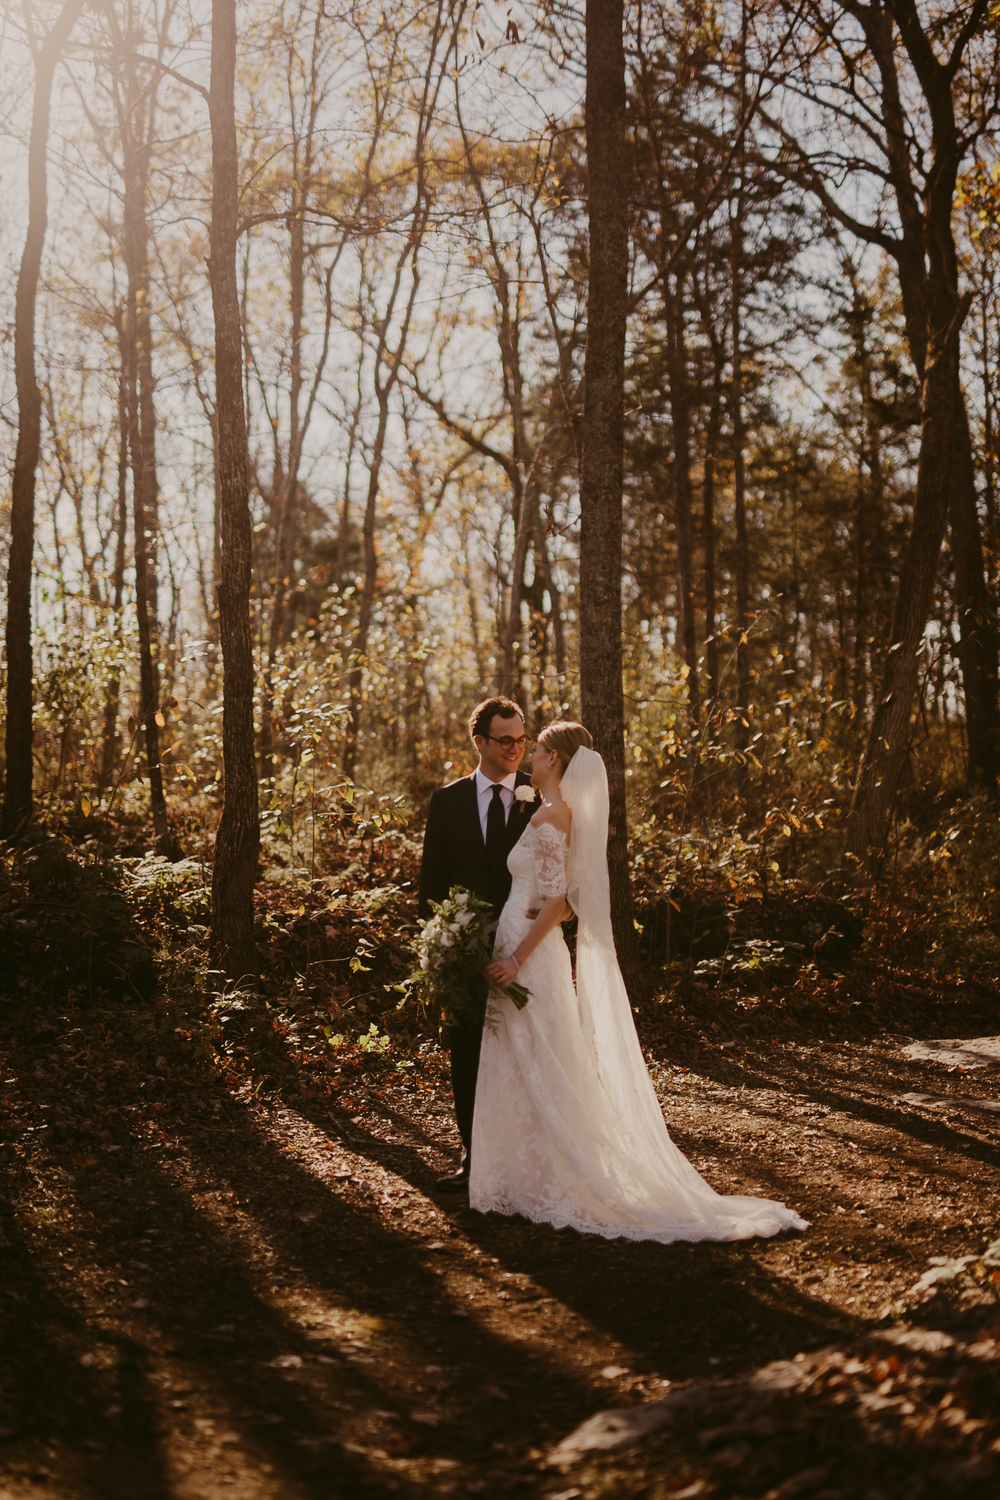 Nashville Wedding The Wrens Nest Modern Vintage Photography Anthology (24 of 105).jpg